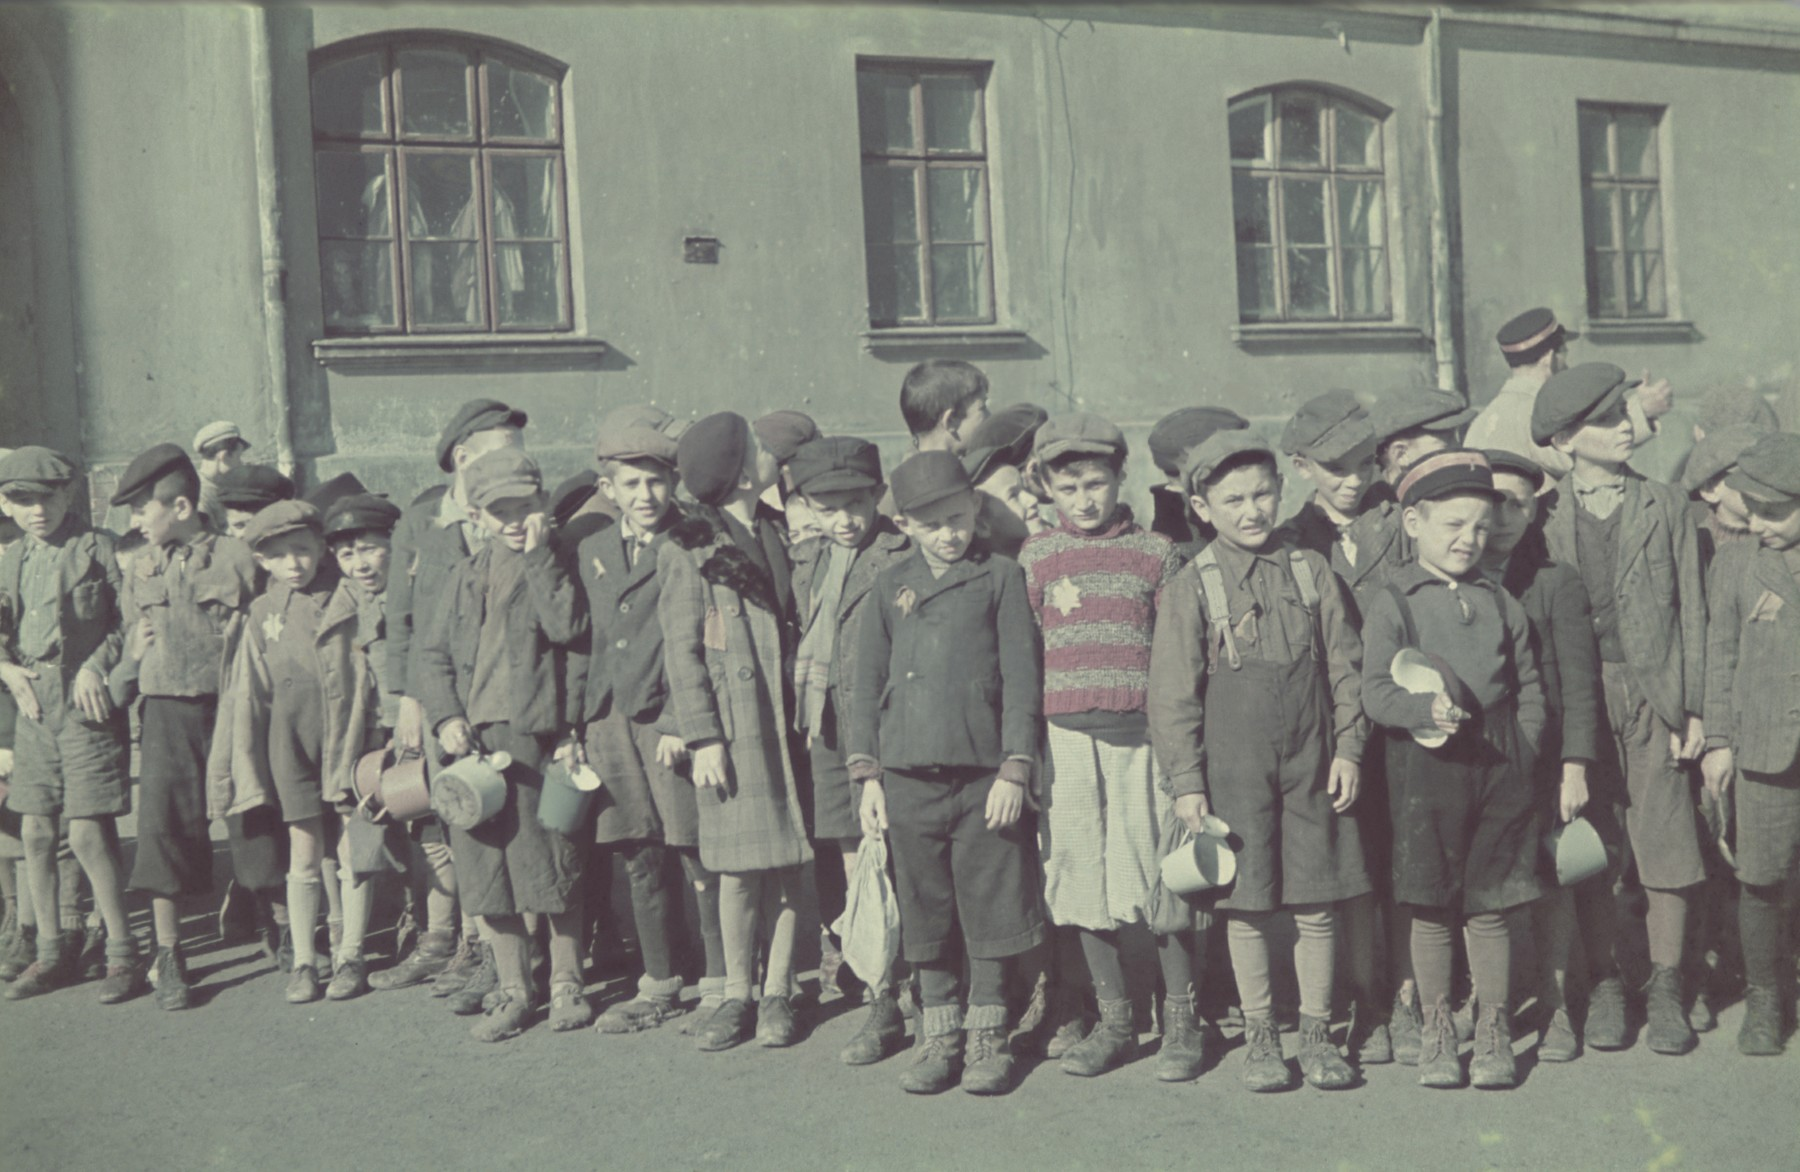 "Ghetto school children holding small pails and cups wait in line outside the ghetto soup kitchen.  Original German caption: ""Schuljugend"" (school children), #146.  Among those pictured is Aleksander Henryk Laks (b. Chaim Cale in 1928), standing below the central pane of the left window, and Sam Pakin (b. Szlamek Pakin), to his left, holding two pails.  Leon Lewkowicz is the seventh from the right with the checkered coat and beret."